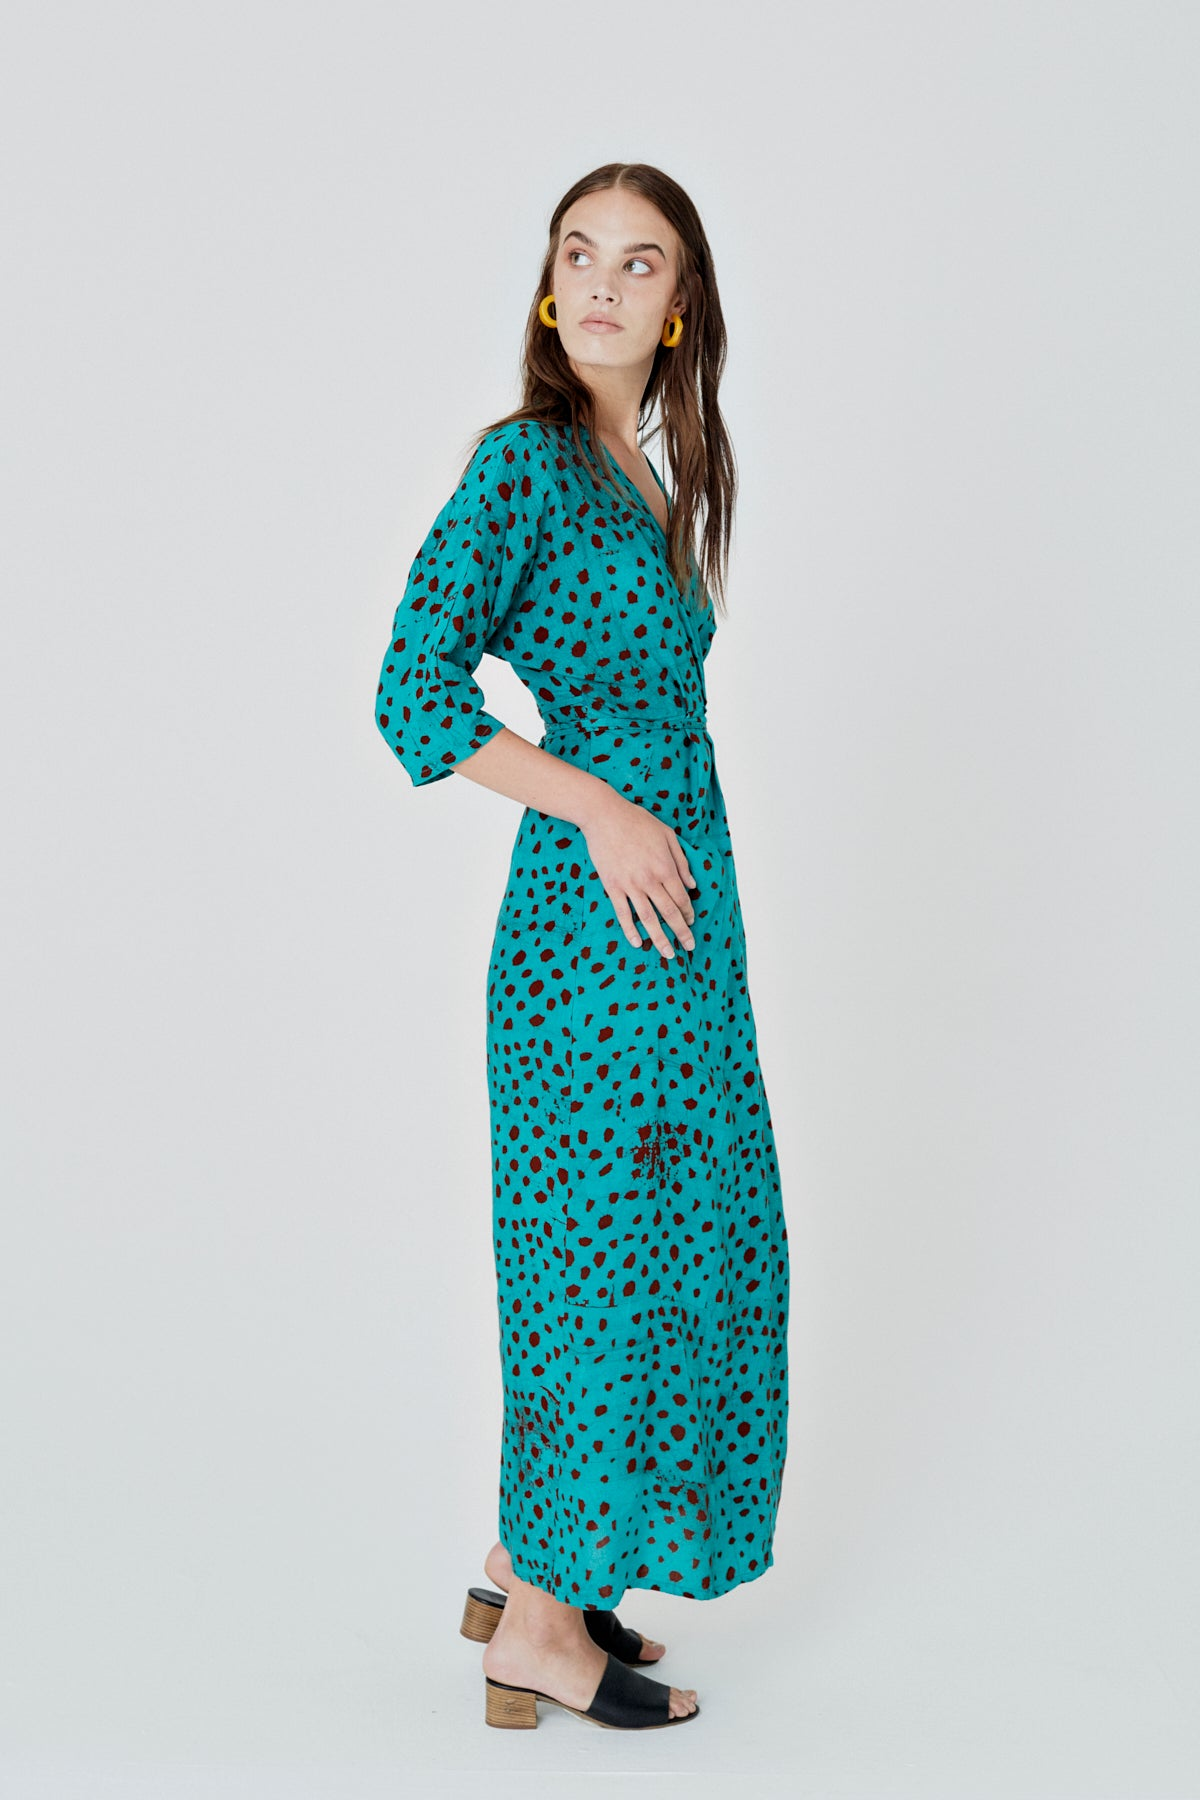 Letsa Wrap Dress in Baby Giraffe